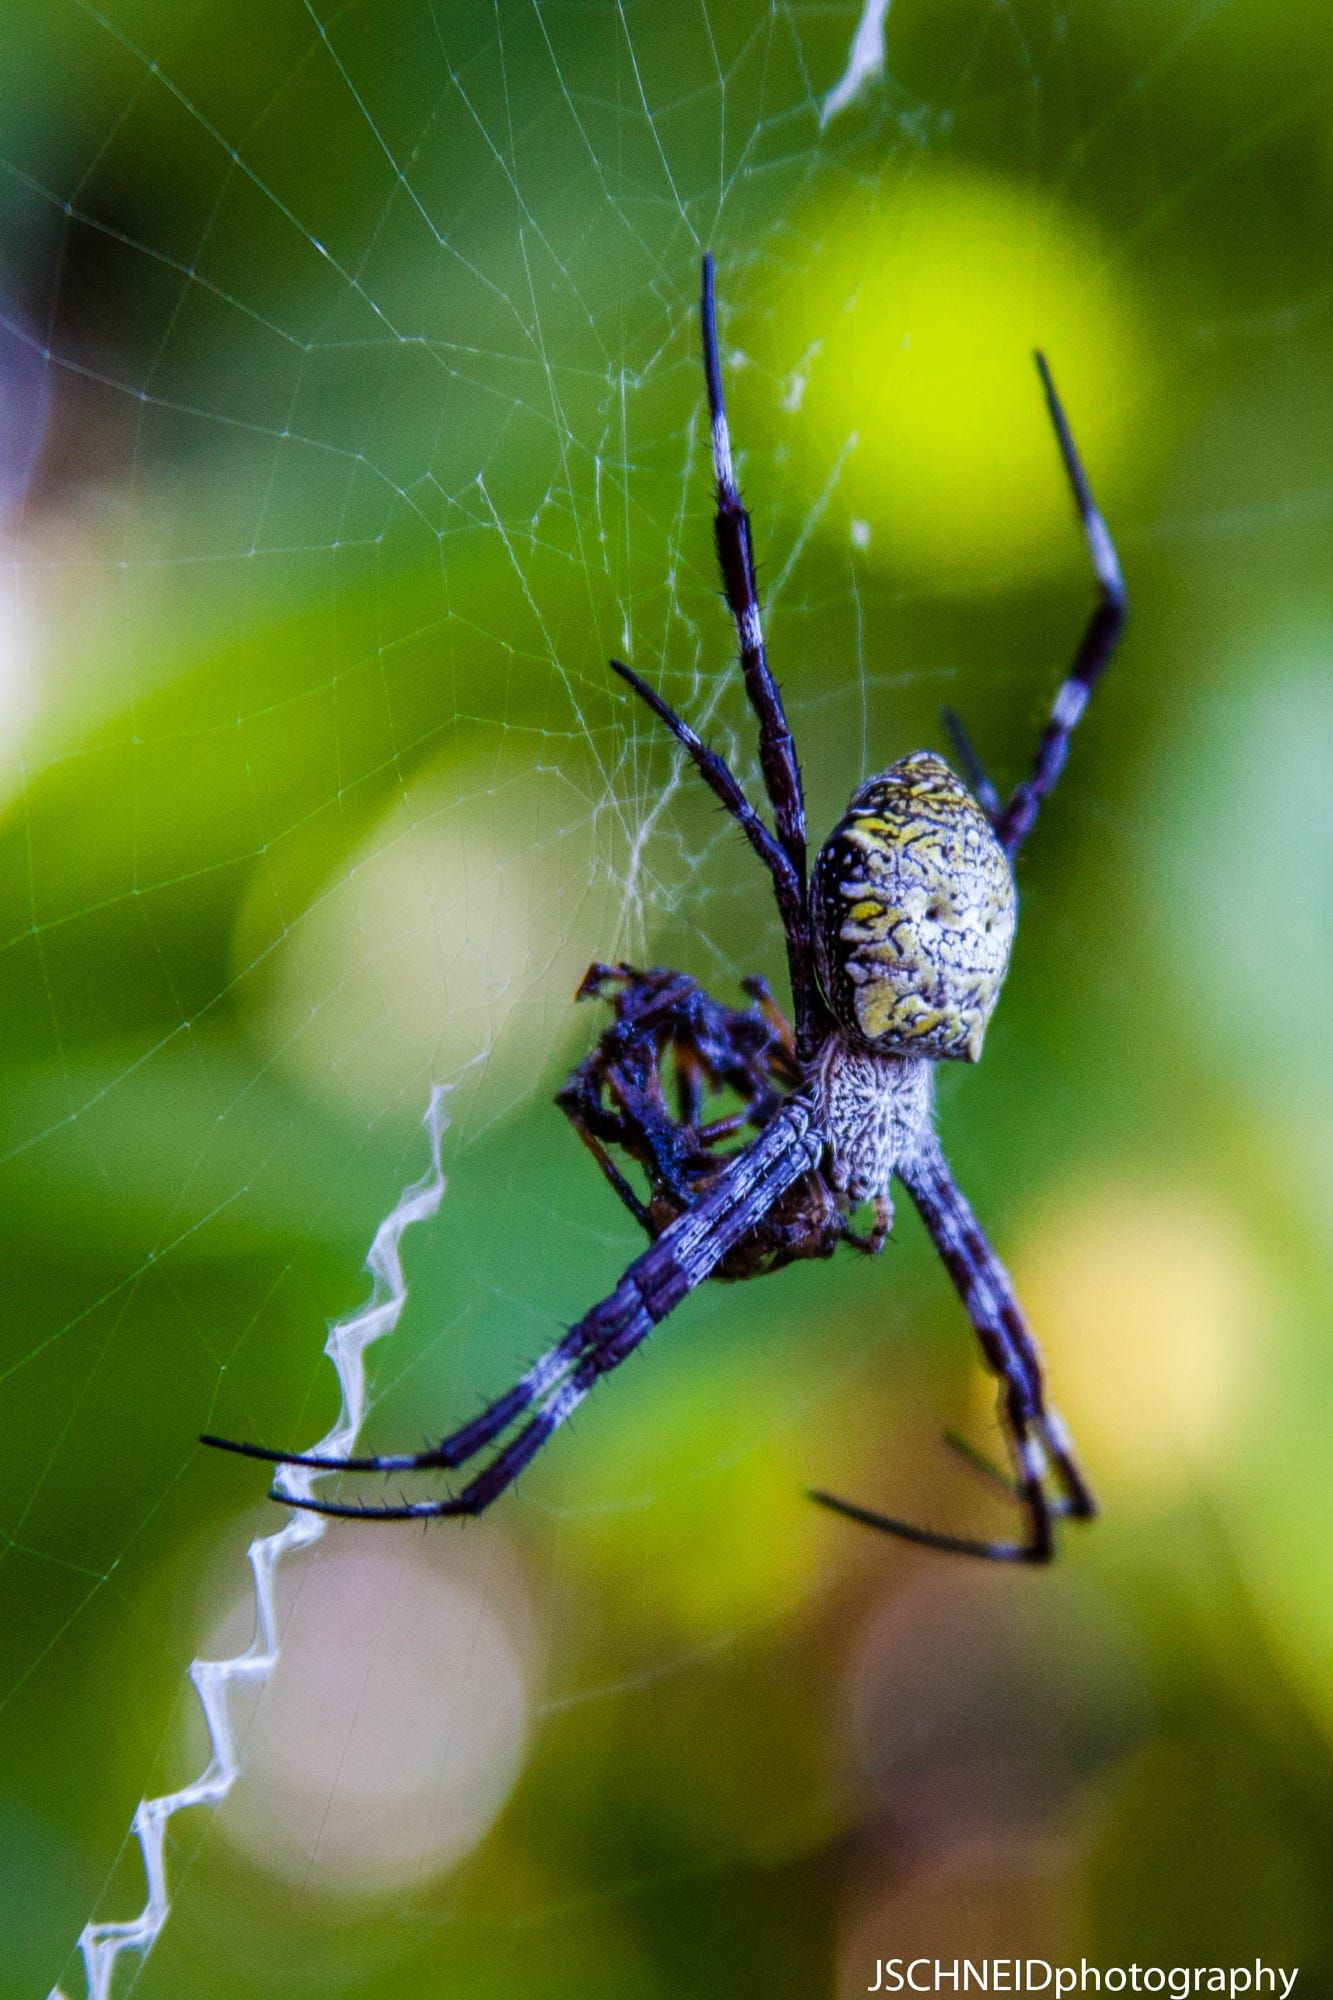 A Garden Spider Having A Meal In Its Web, Poipu,